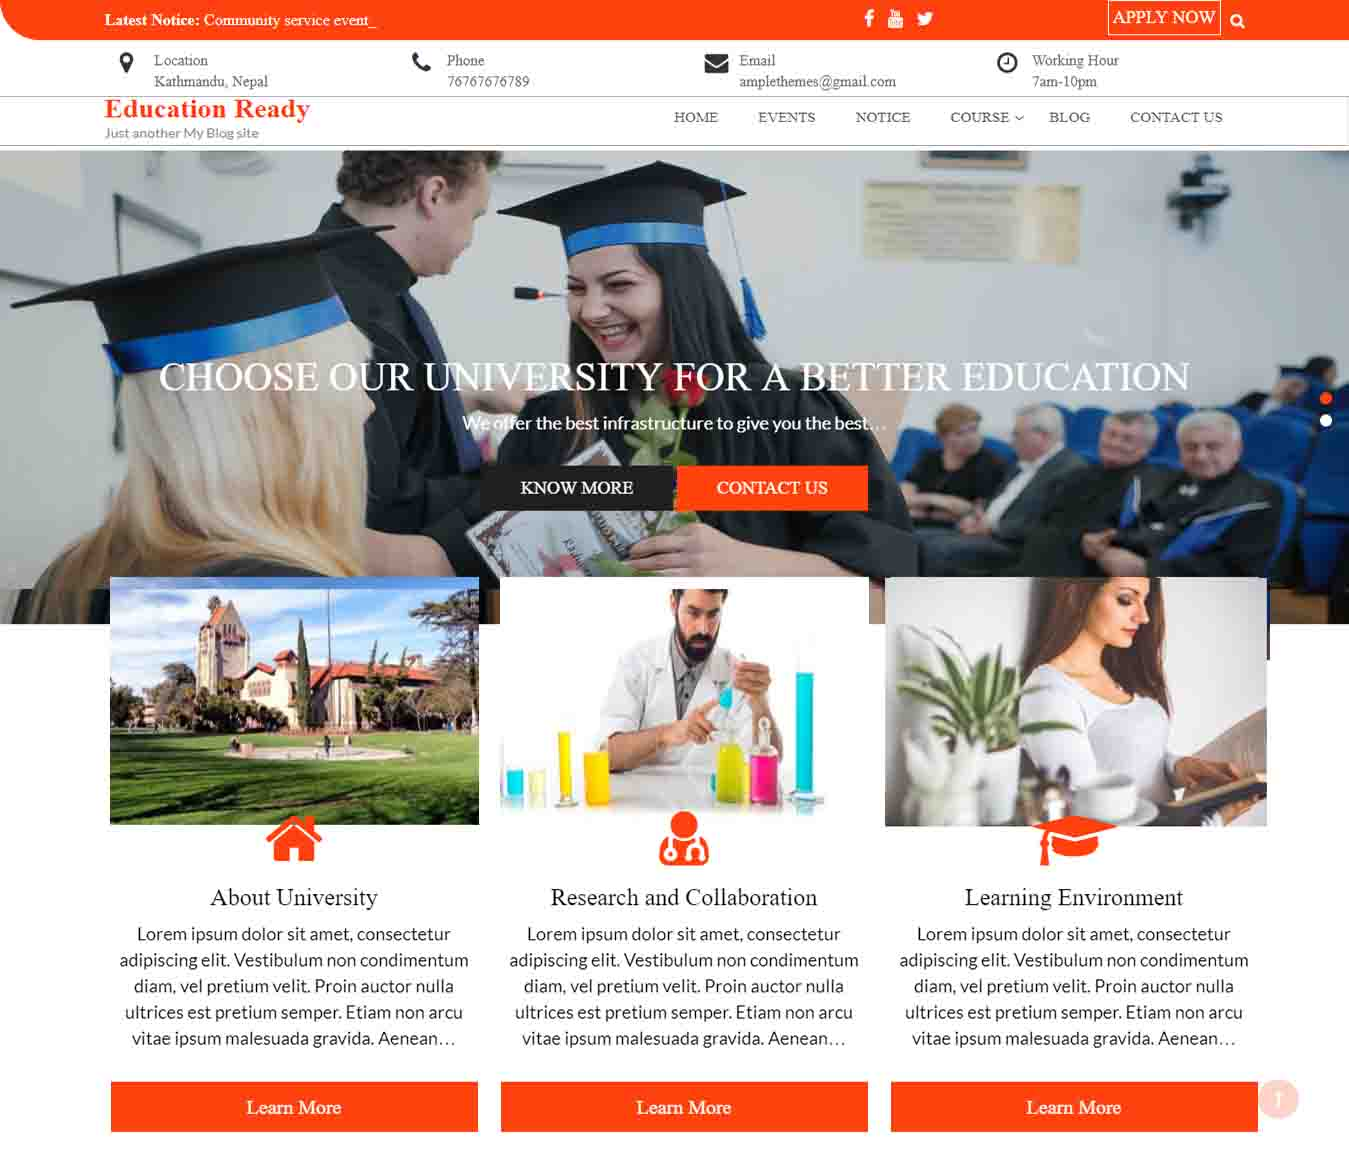 Education Ready Preview Wordpress Theme - Rating, Reviews, Preview, Demo & Download